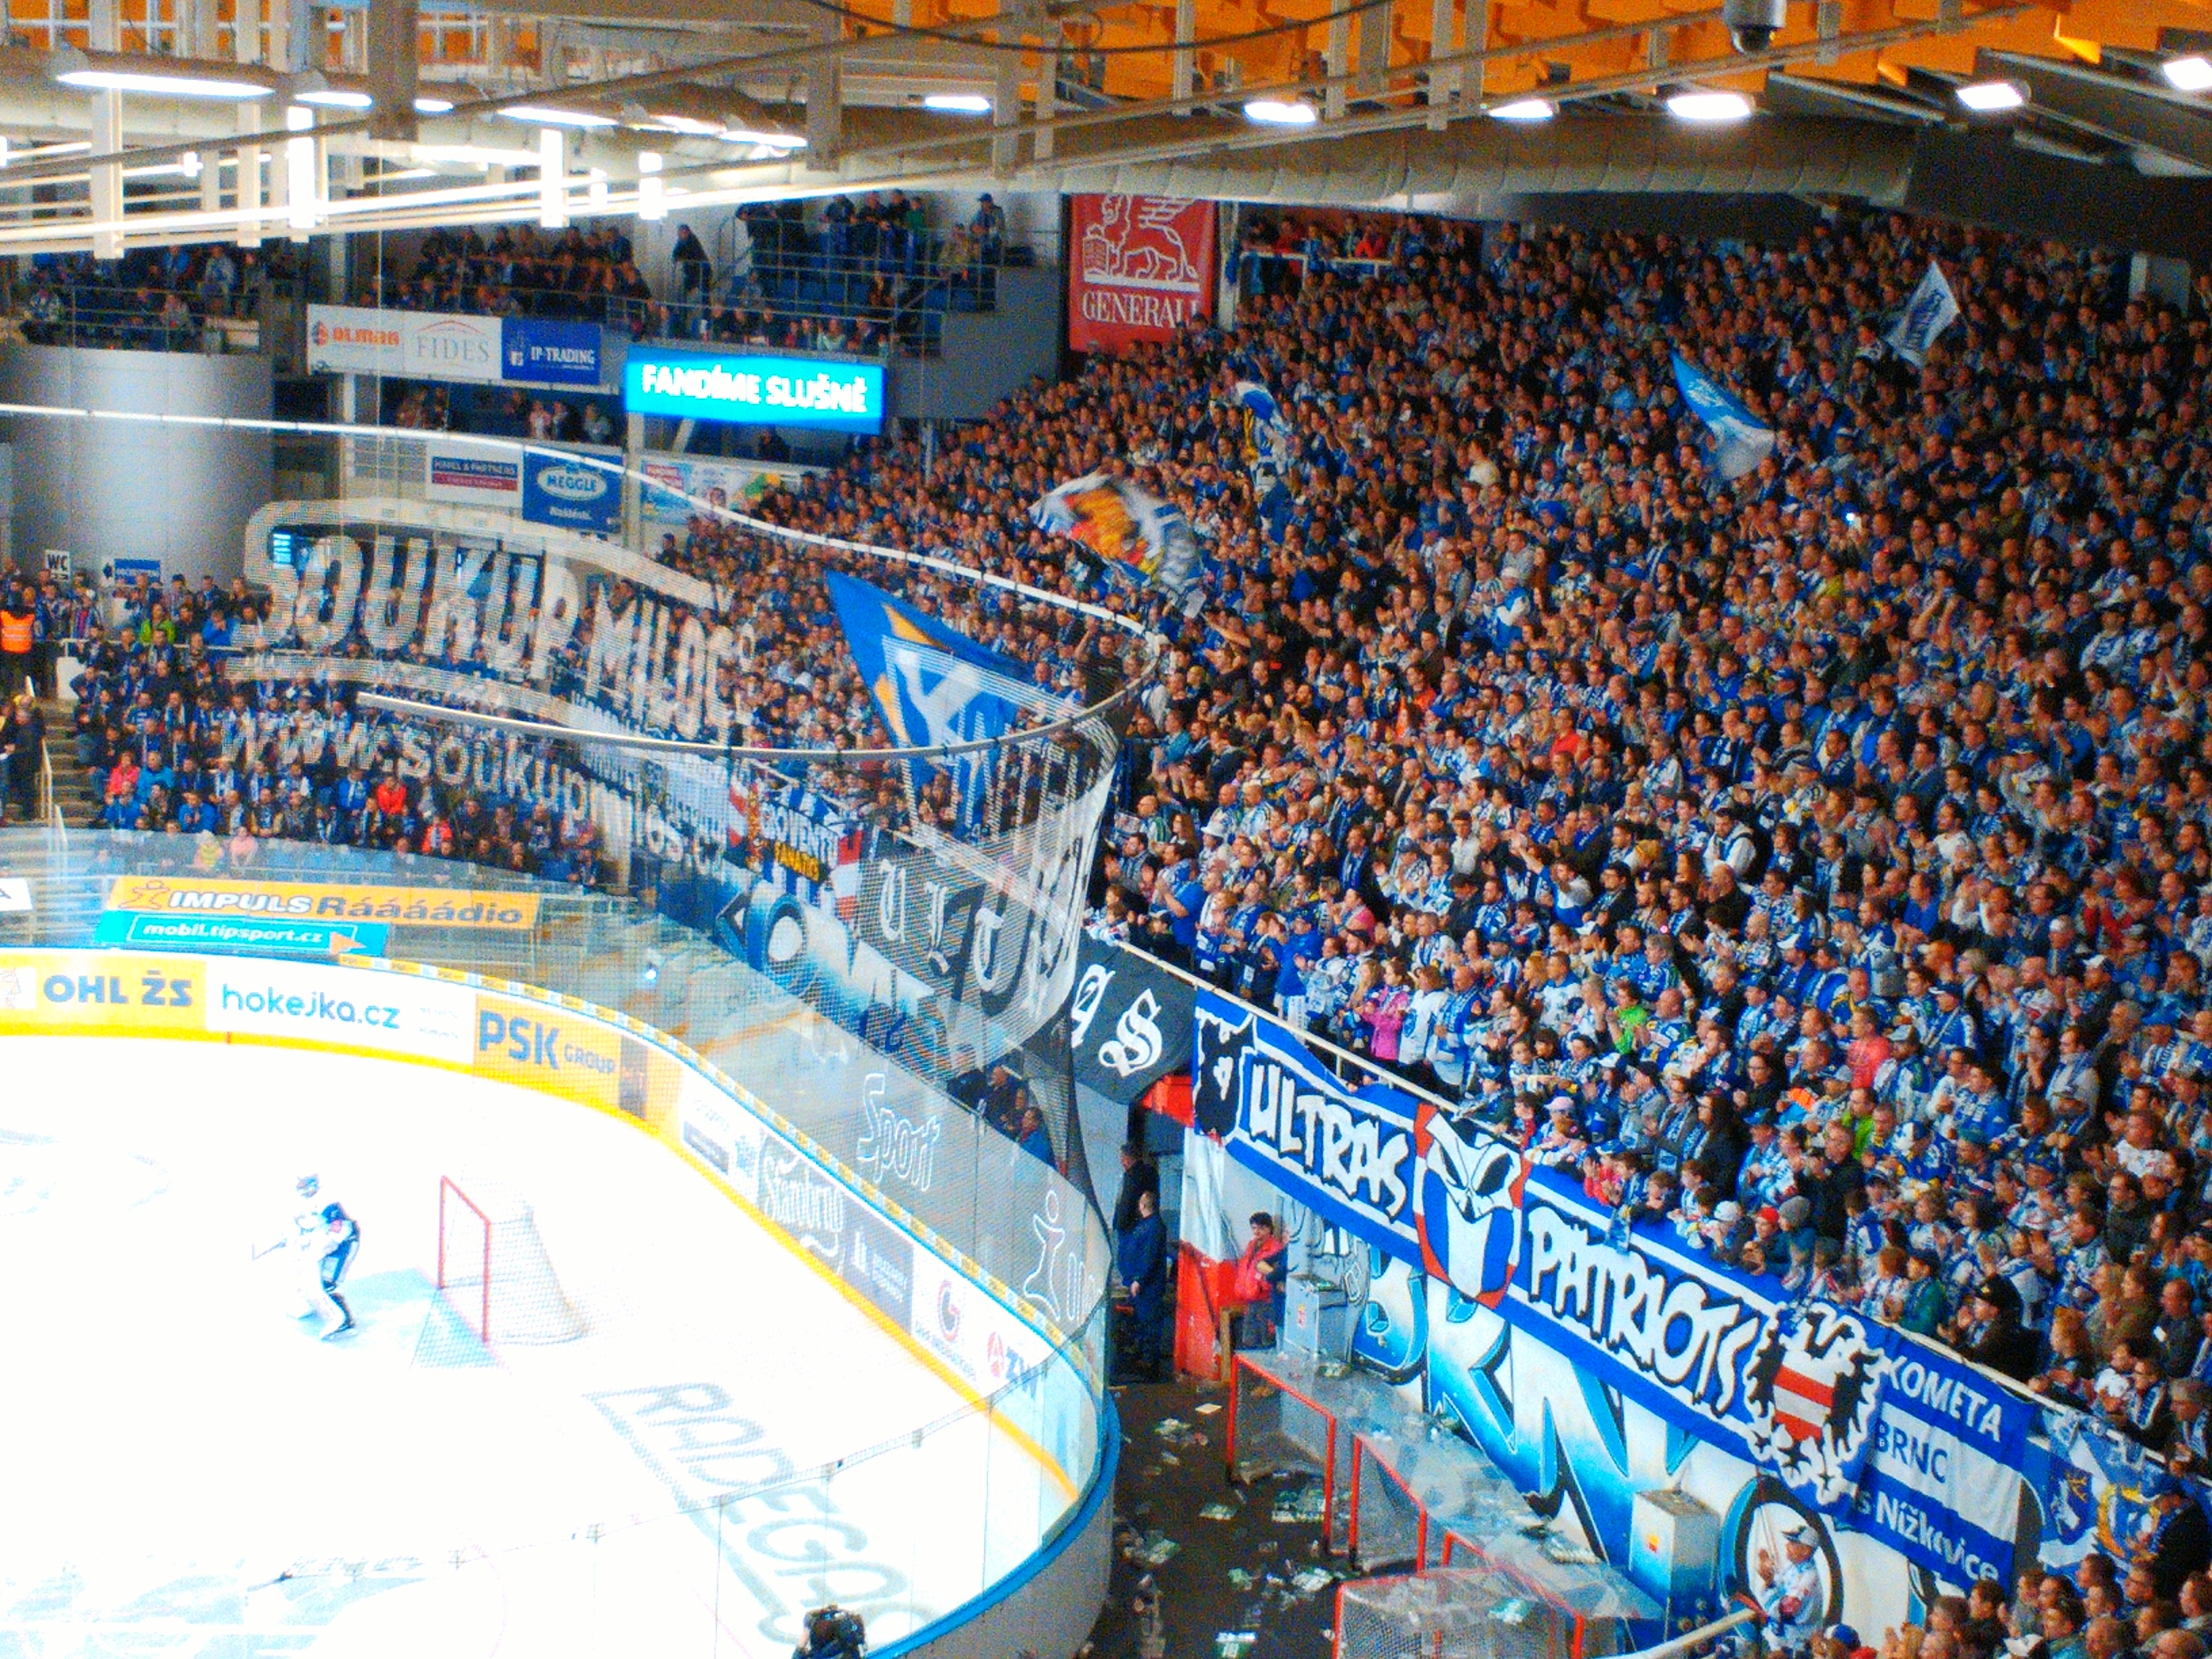 A crowd of Kometa's fans are supporting home team. Photo: Ondřej Zoubek